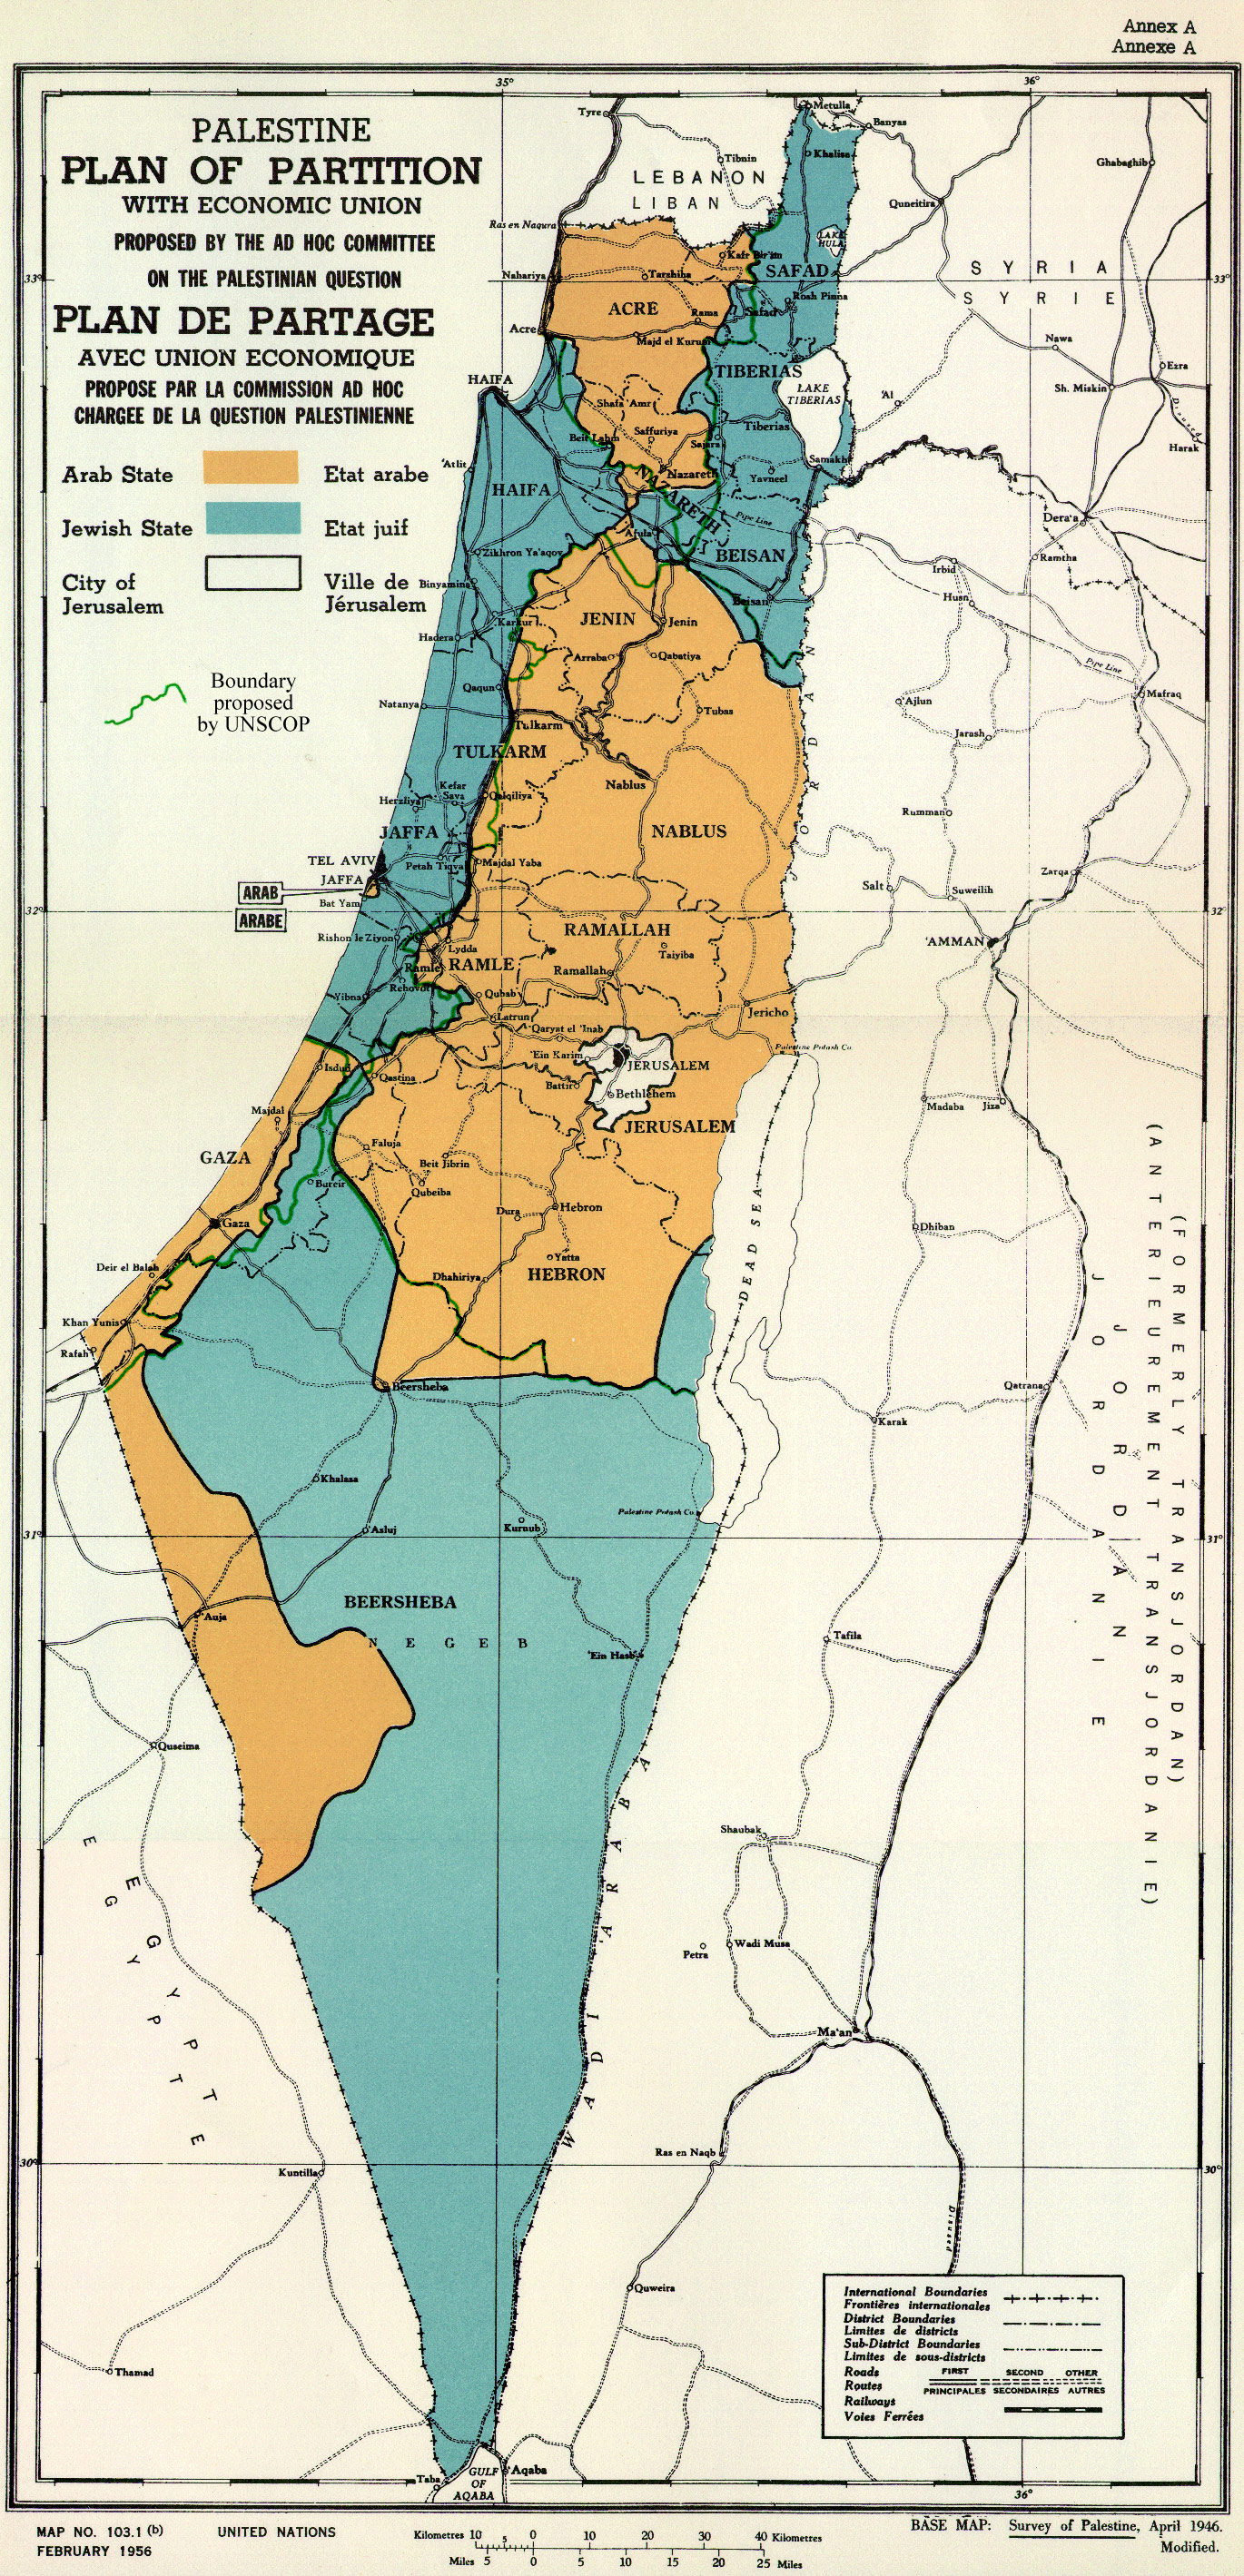 UN 1947 Partition Map